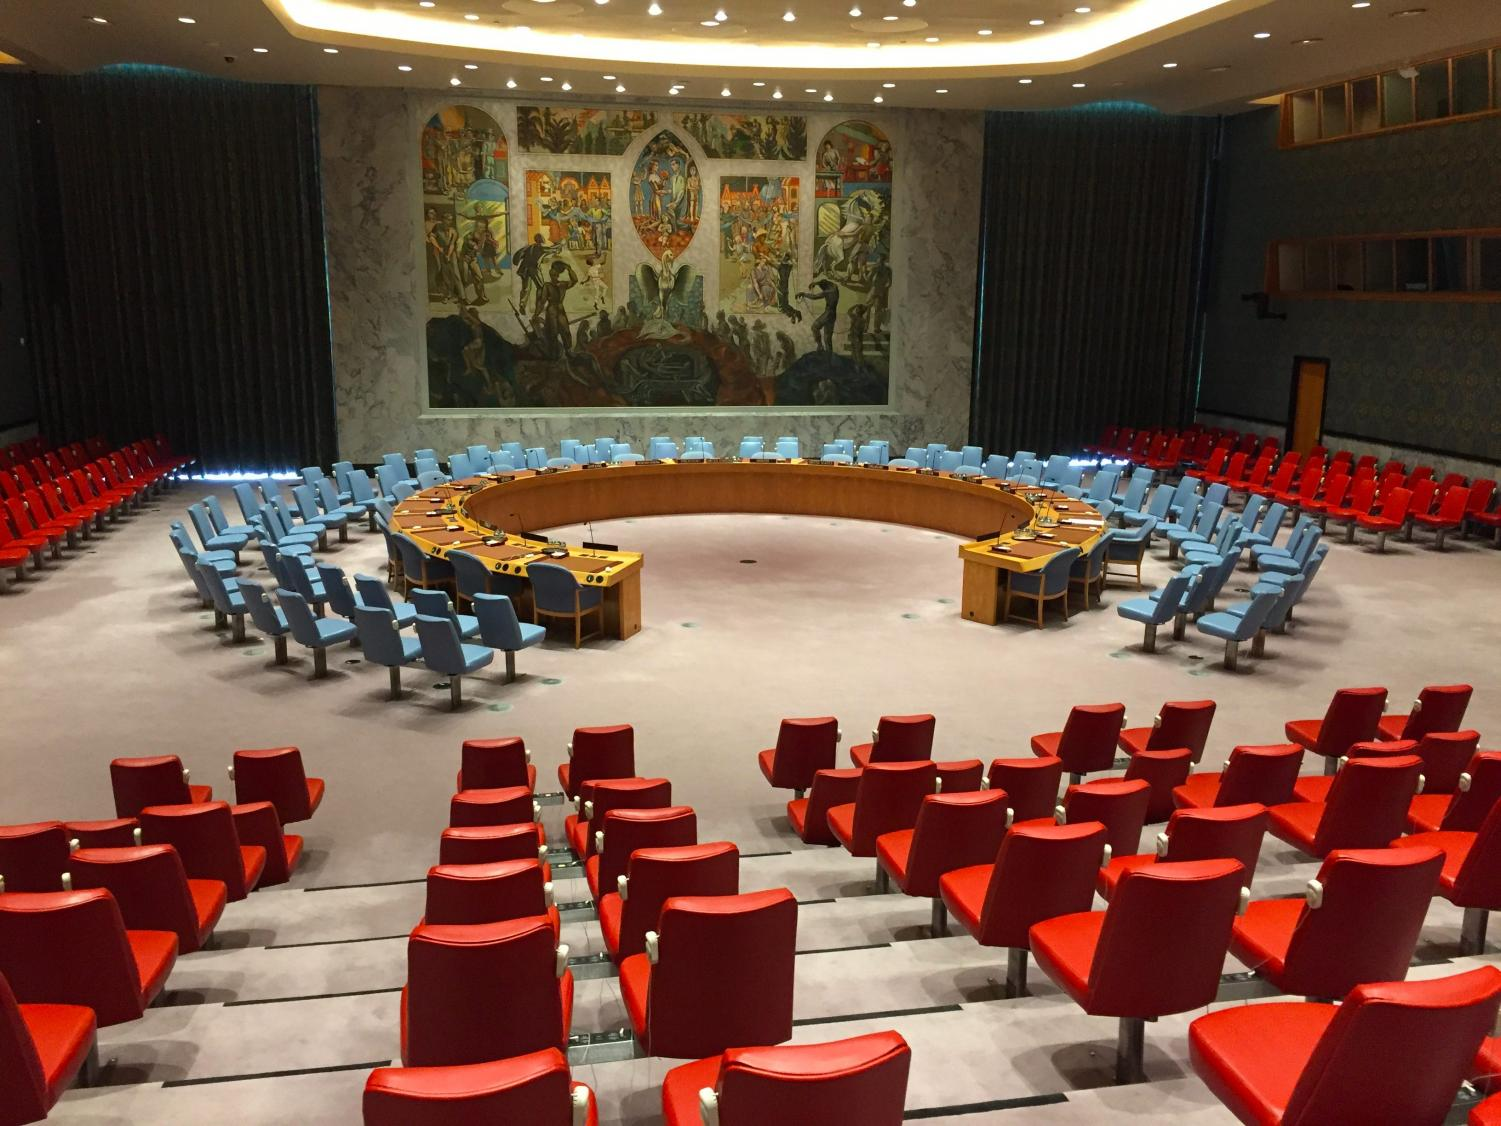 The United Nations Security Council Room